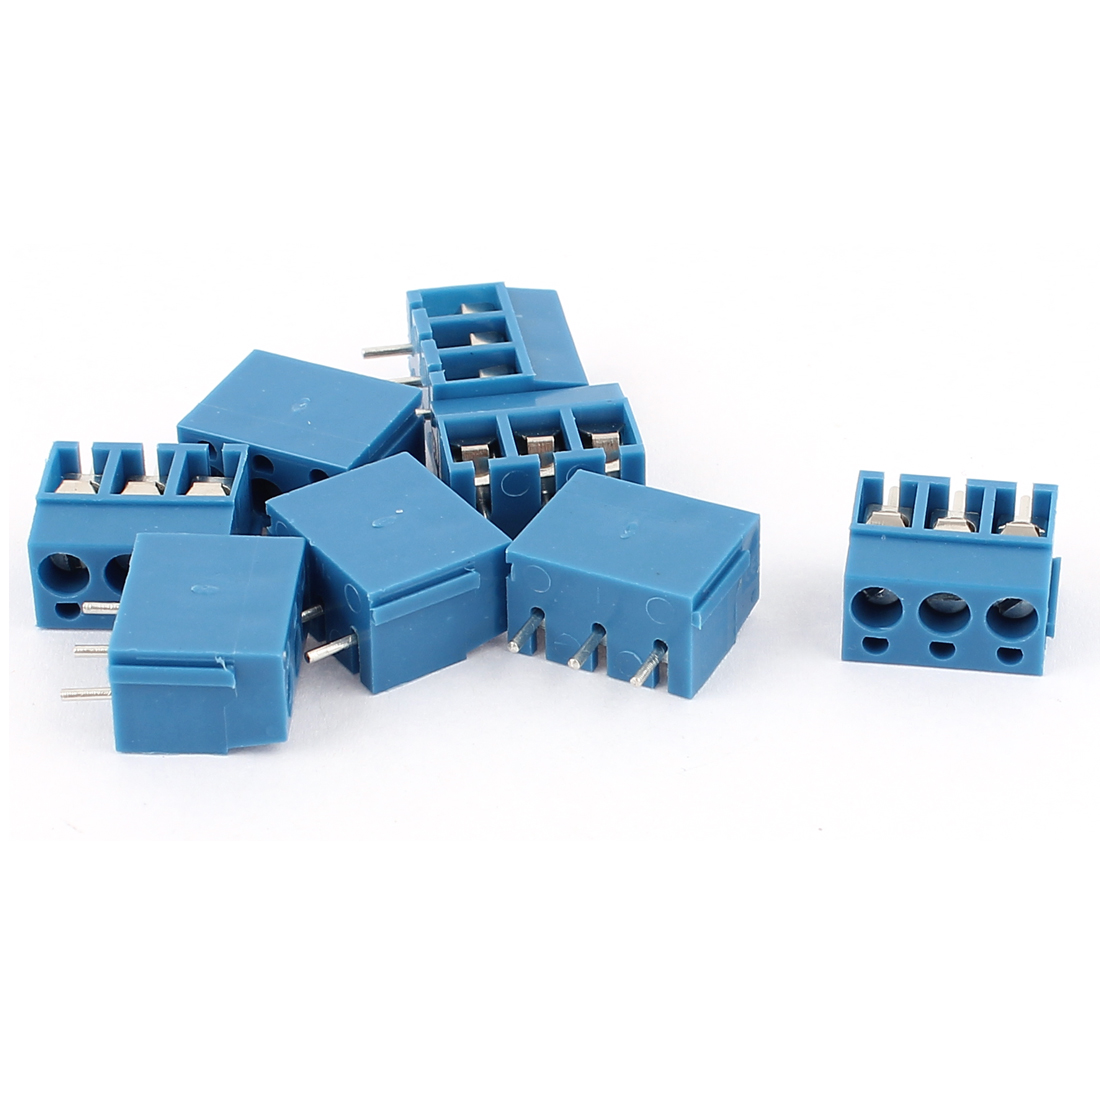 8Pcs AWG 22-14 AC 300V 10A 3P PCB Mount Screw Terminal Block Blue